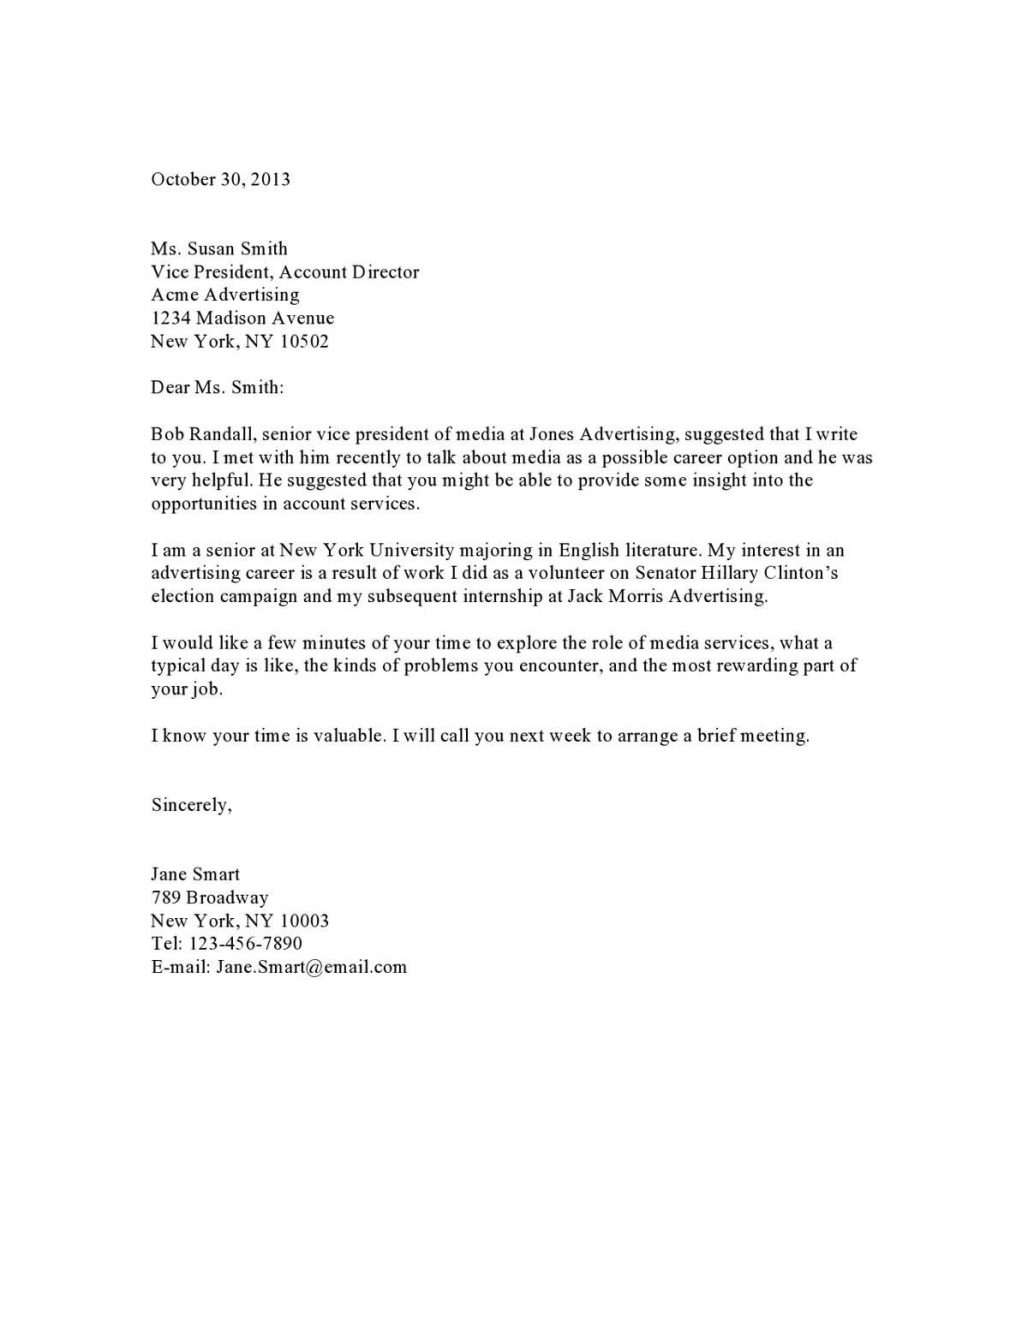 Court ordered Community Service Letter Template - How to Write A Munity Service Letter Gallery Letter format